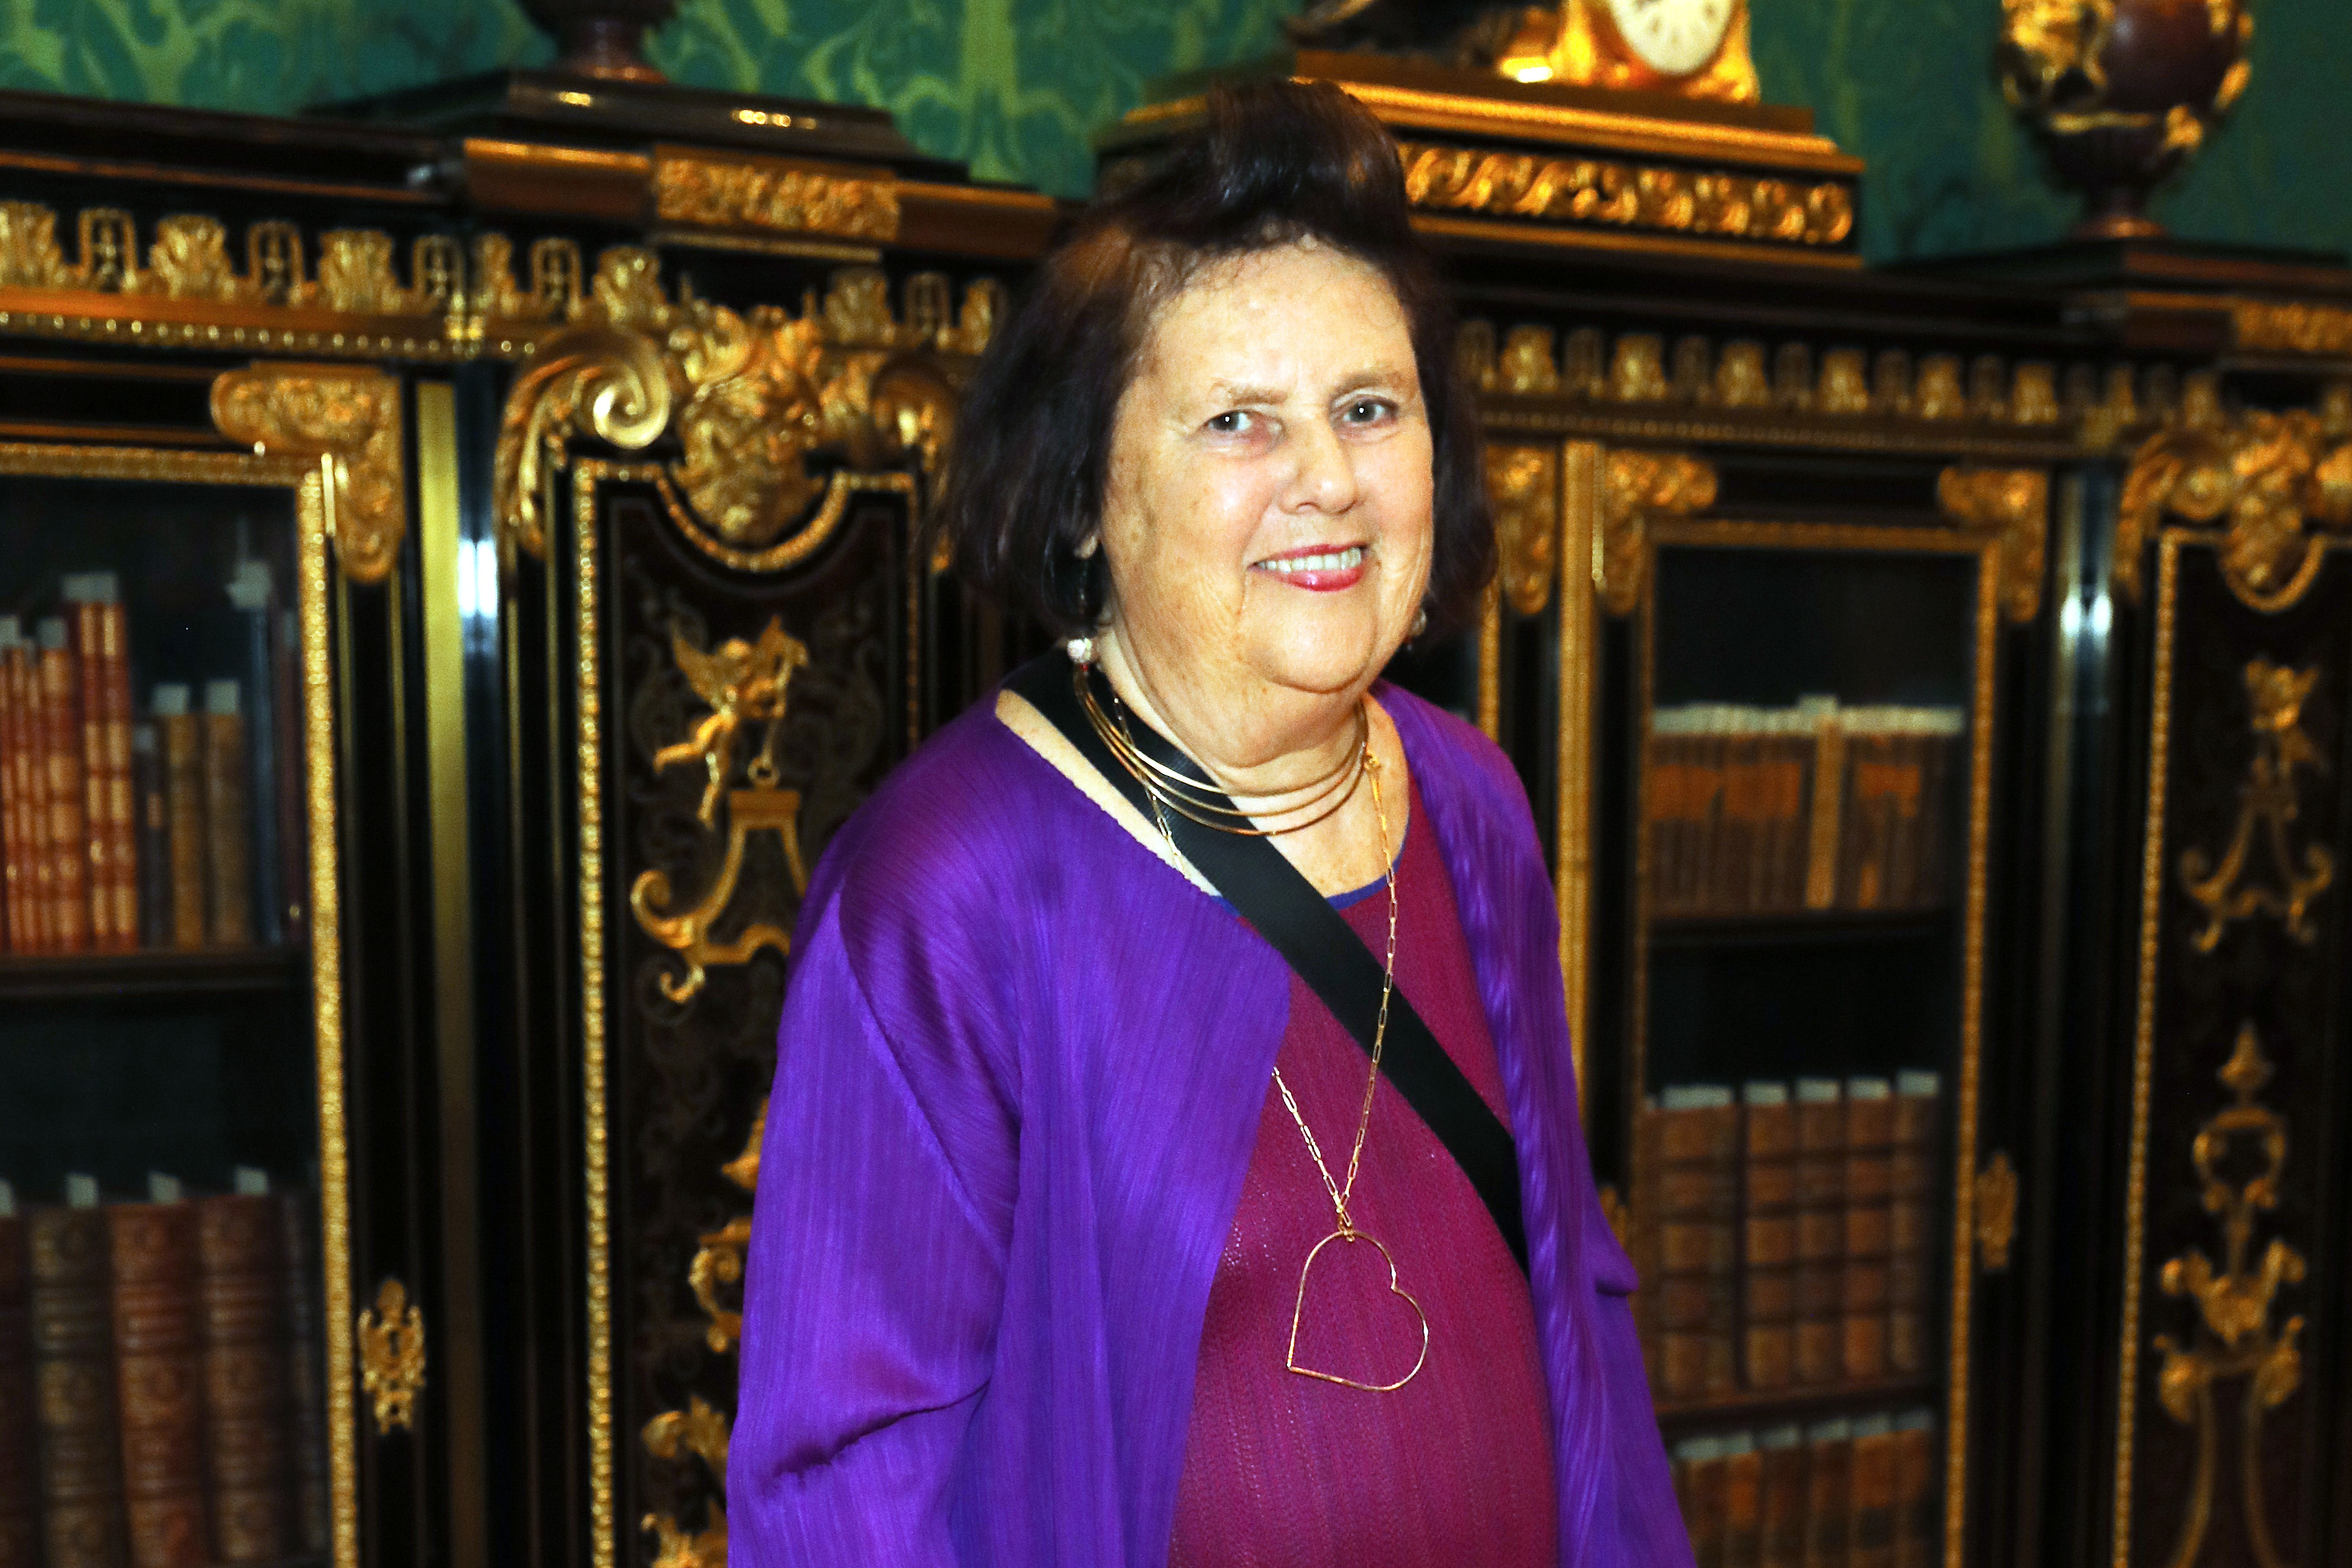 LONDON, ENGLAND - SEPTEMBER 16: Suzy Menkes attends the launch of Cabana x Carolina Herrera Tabletop collaboration at the The Wallace Collection on September 16, 2019 in London, England. Pic credit: Dave Benett